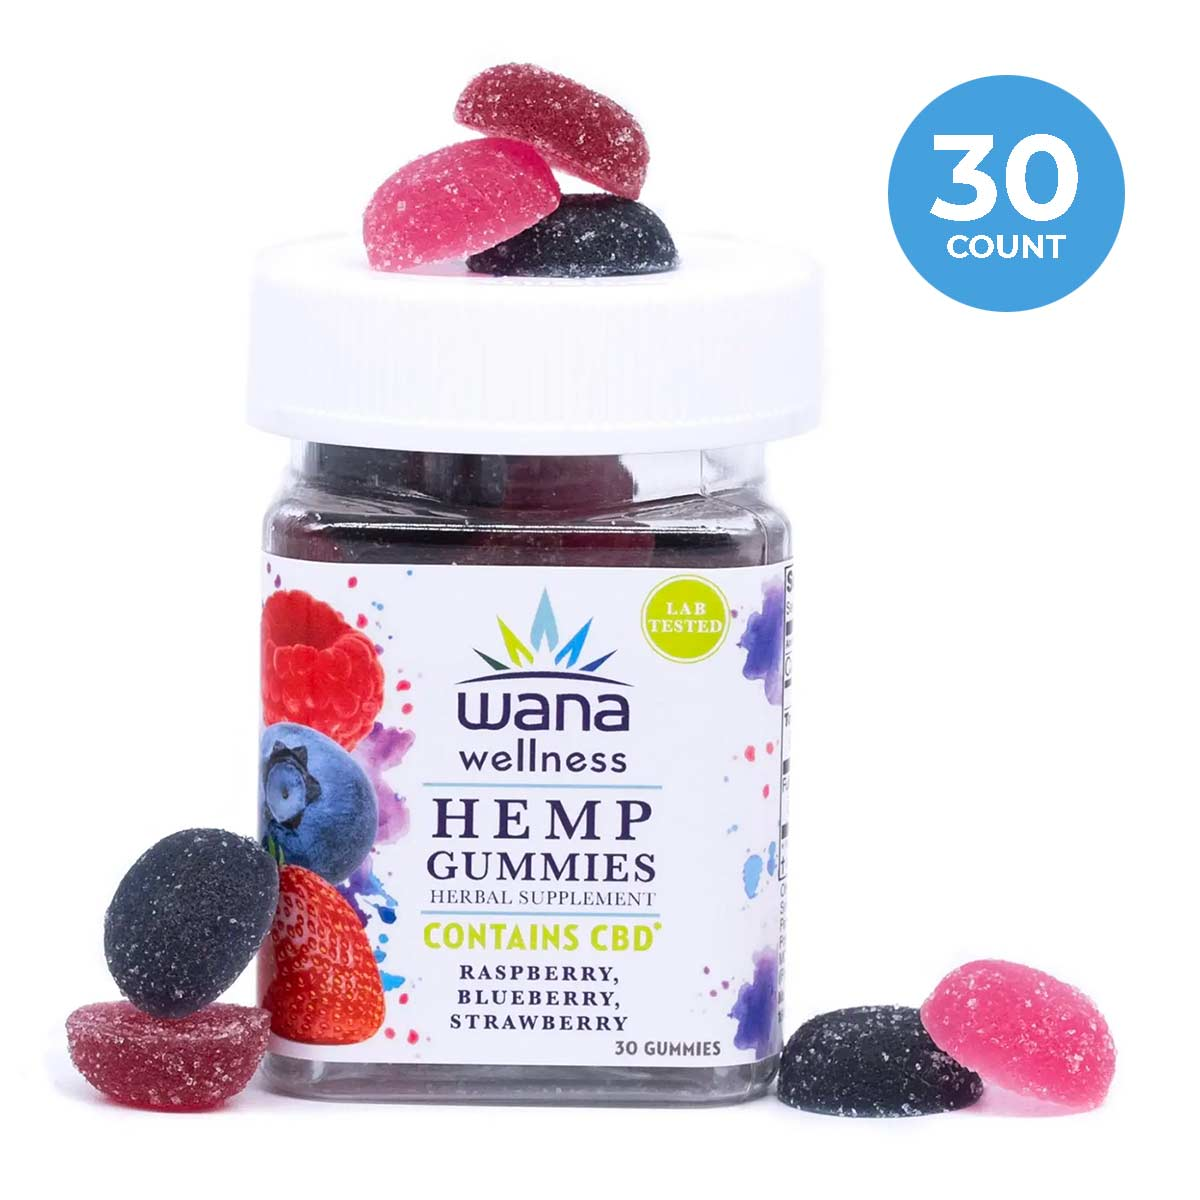 Wana Wellness Hemp Gummies